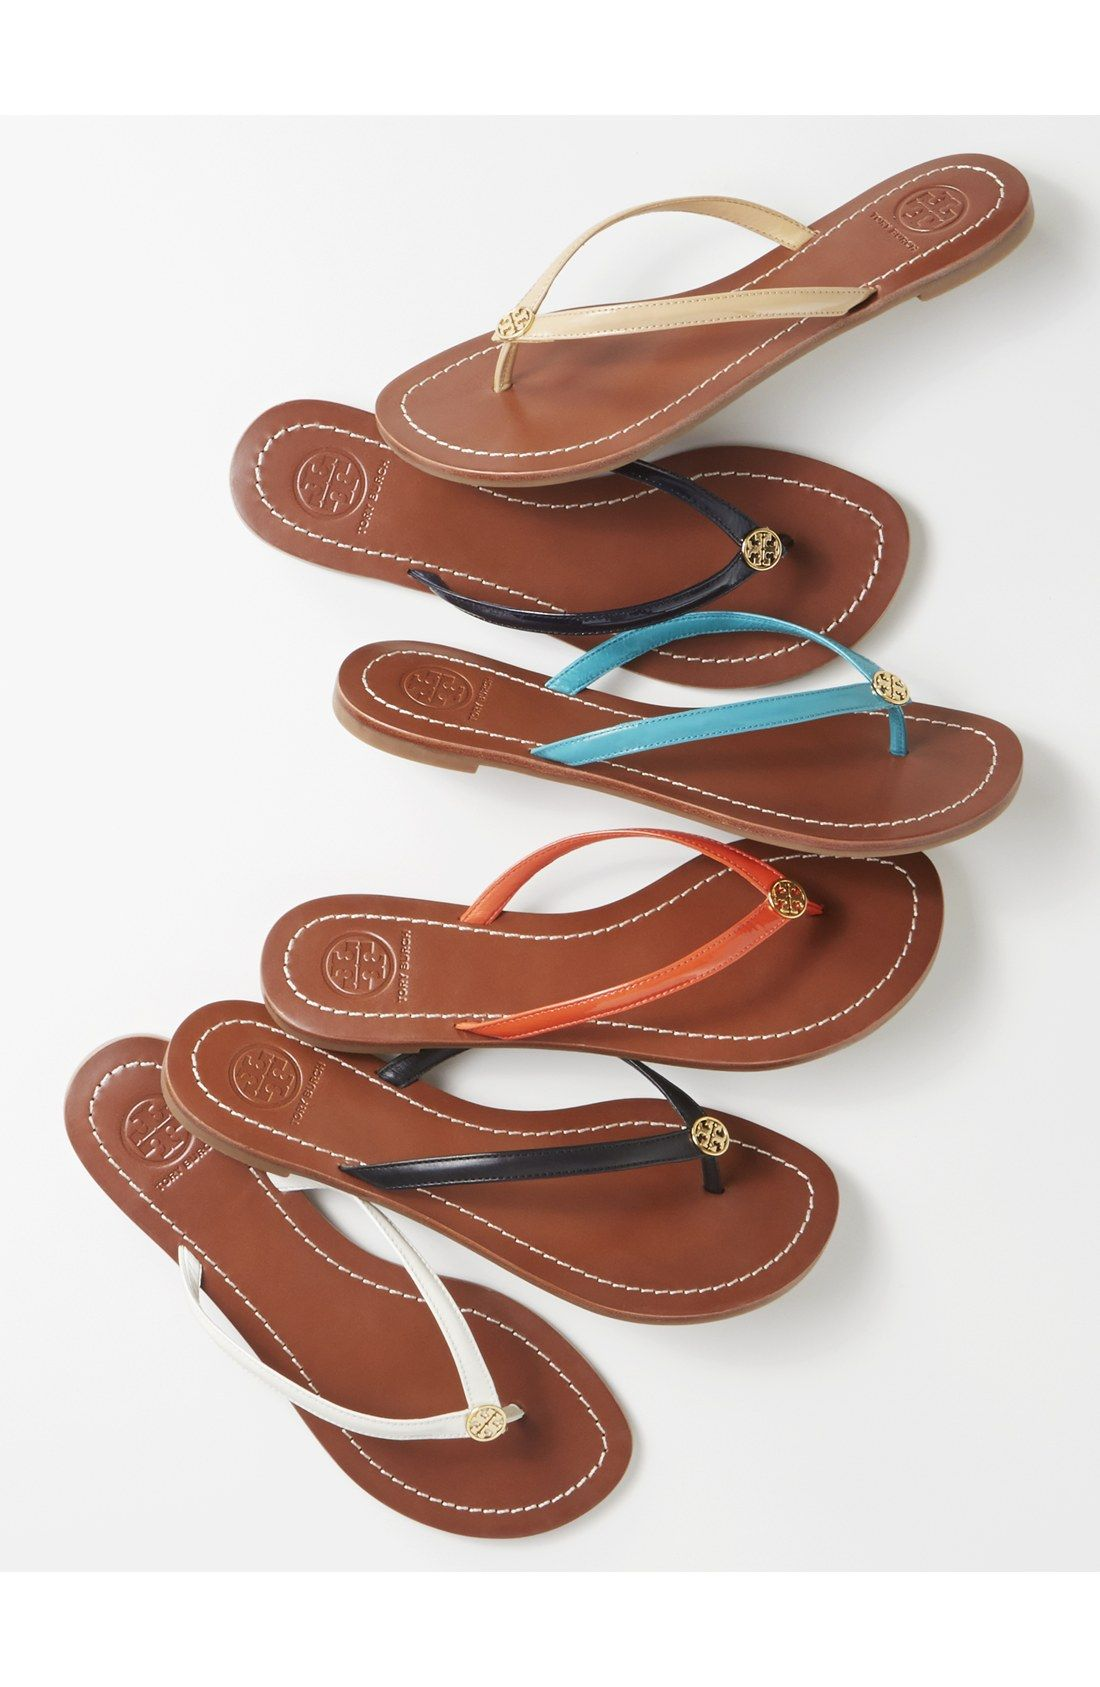 5cb7aa9f68a31 http   www.newtrendclothing.com category tory-burch